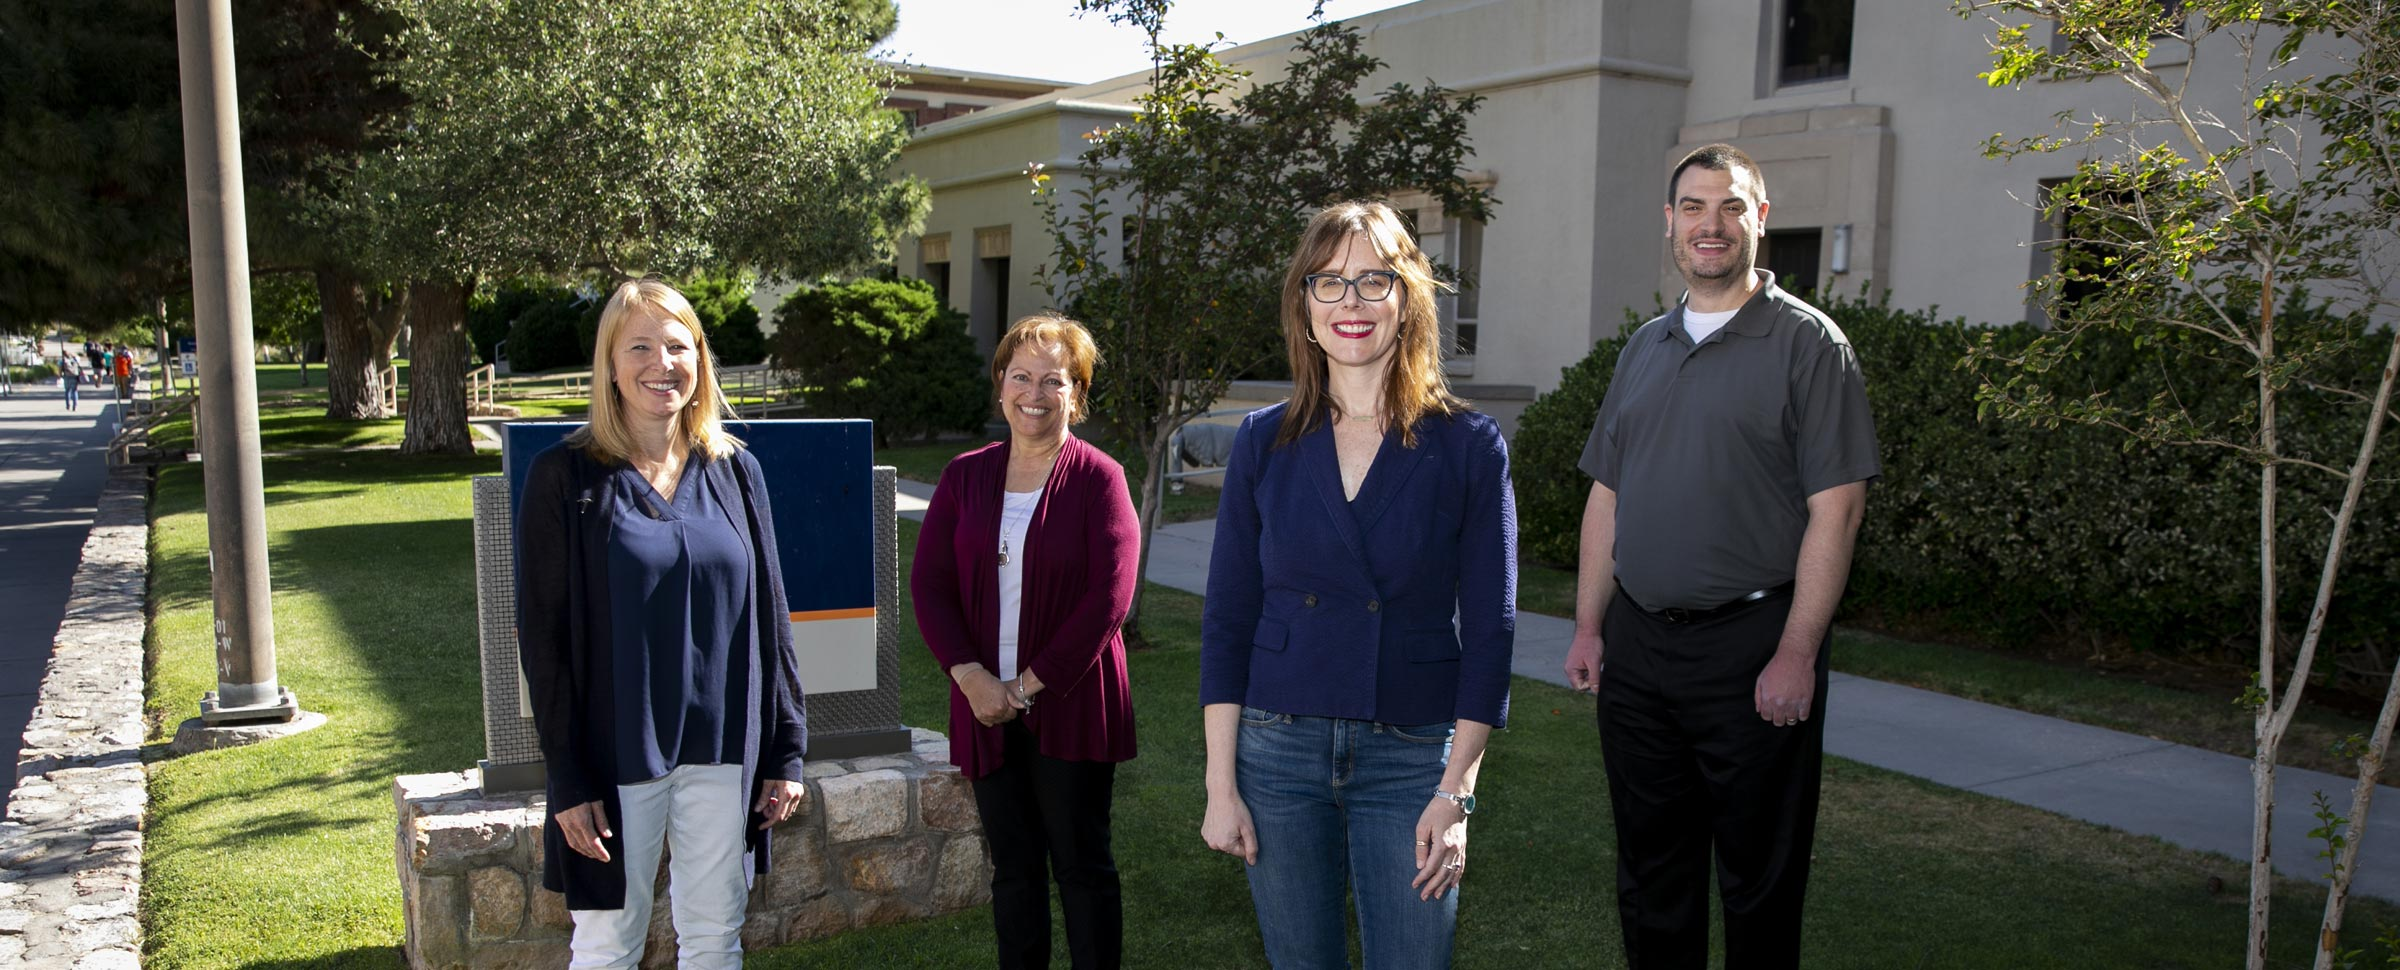 UTEP to Receive $1.2M Grant to Prepare Future STEM Teachers